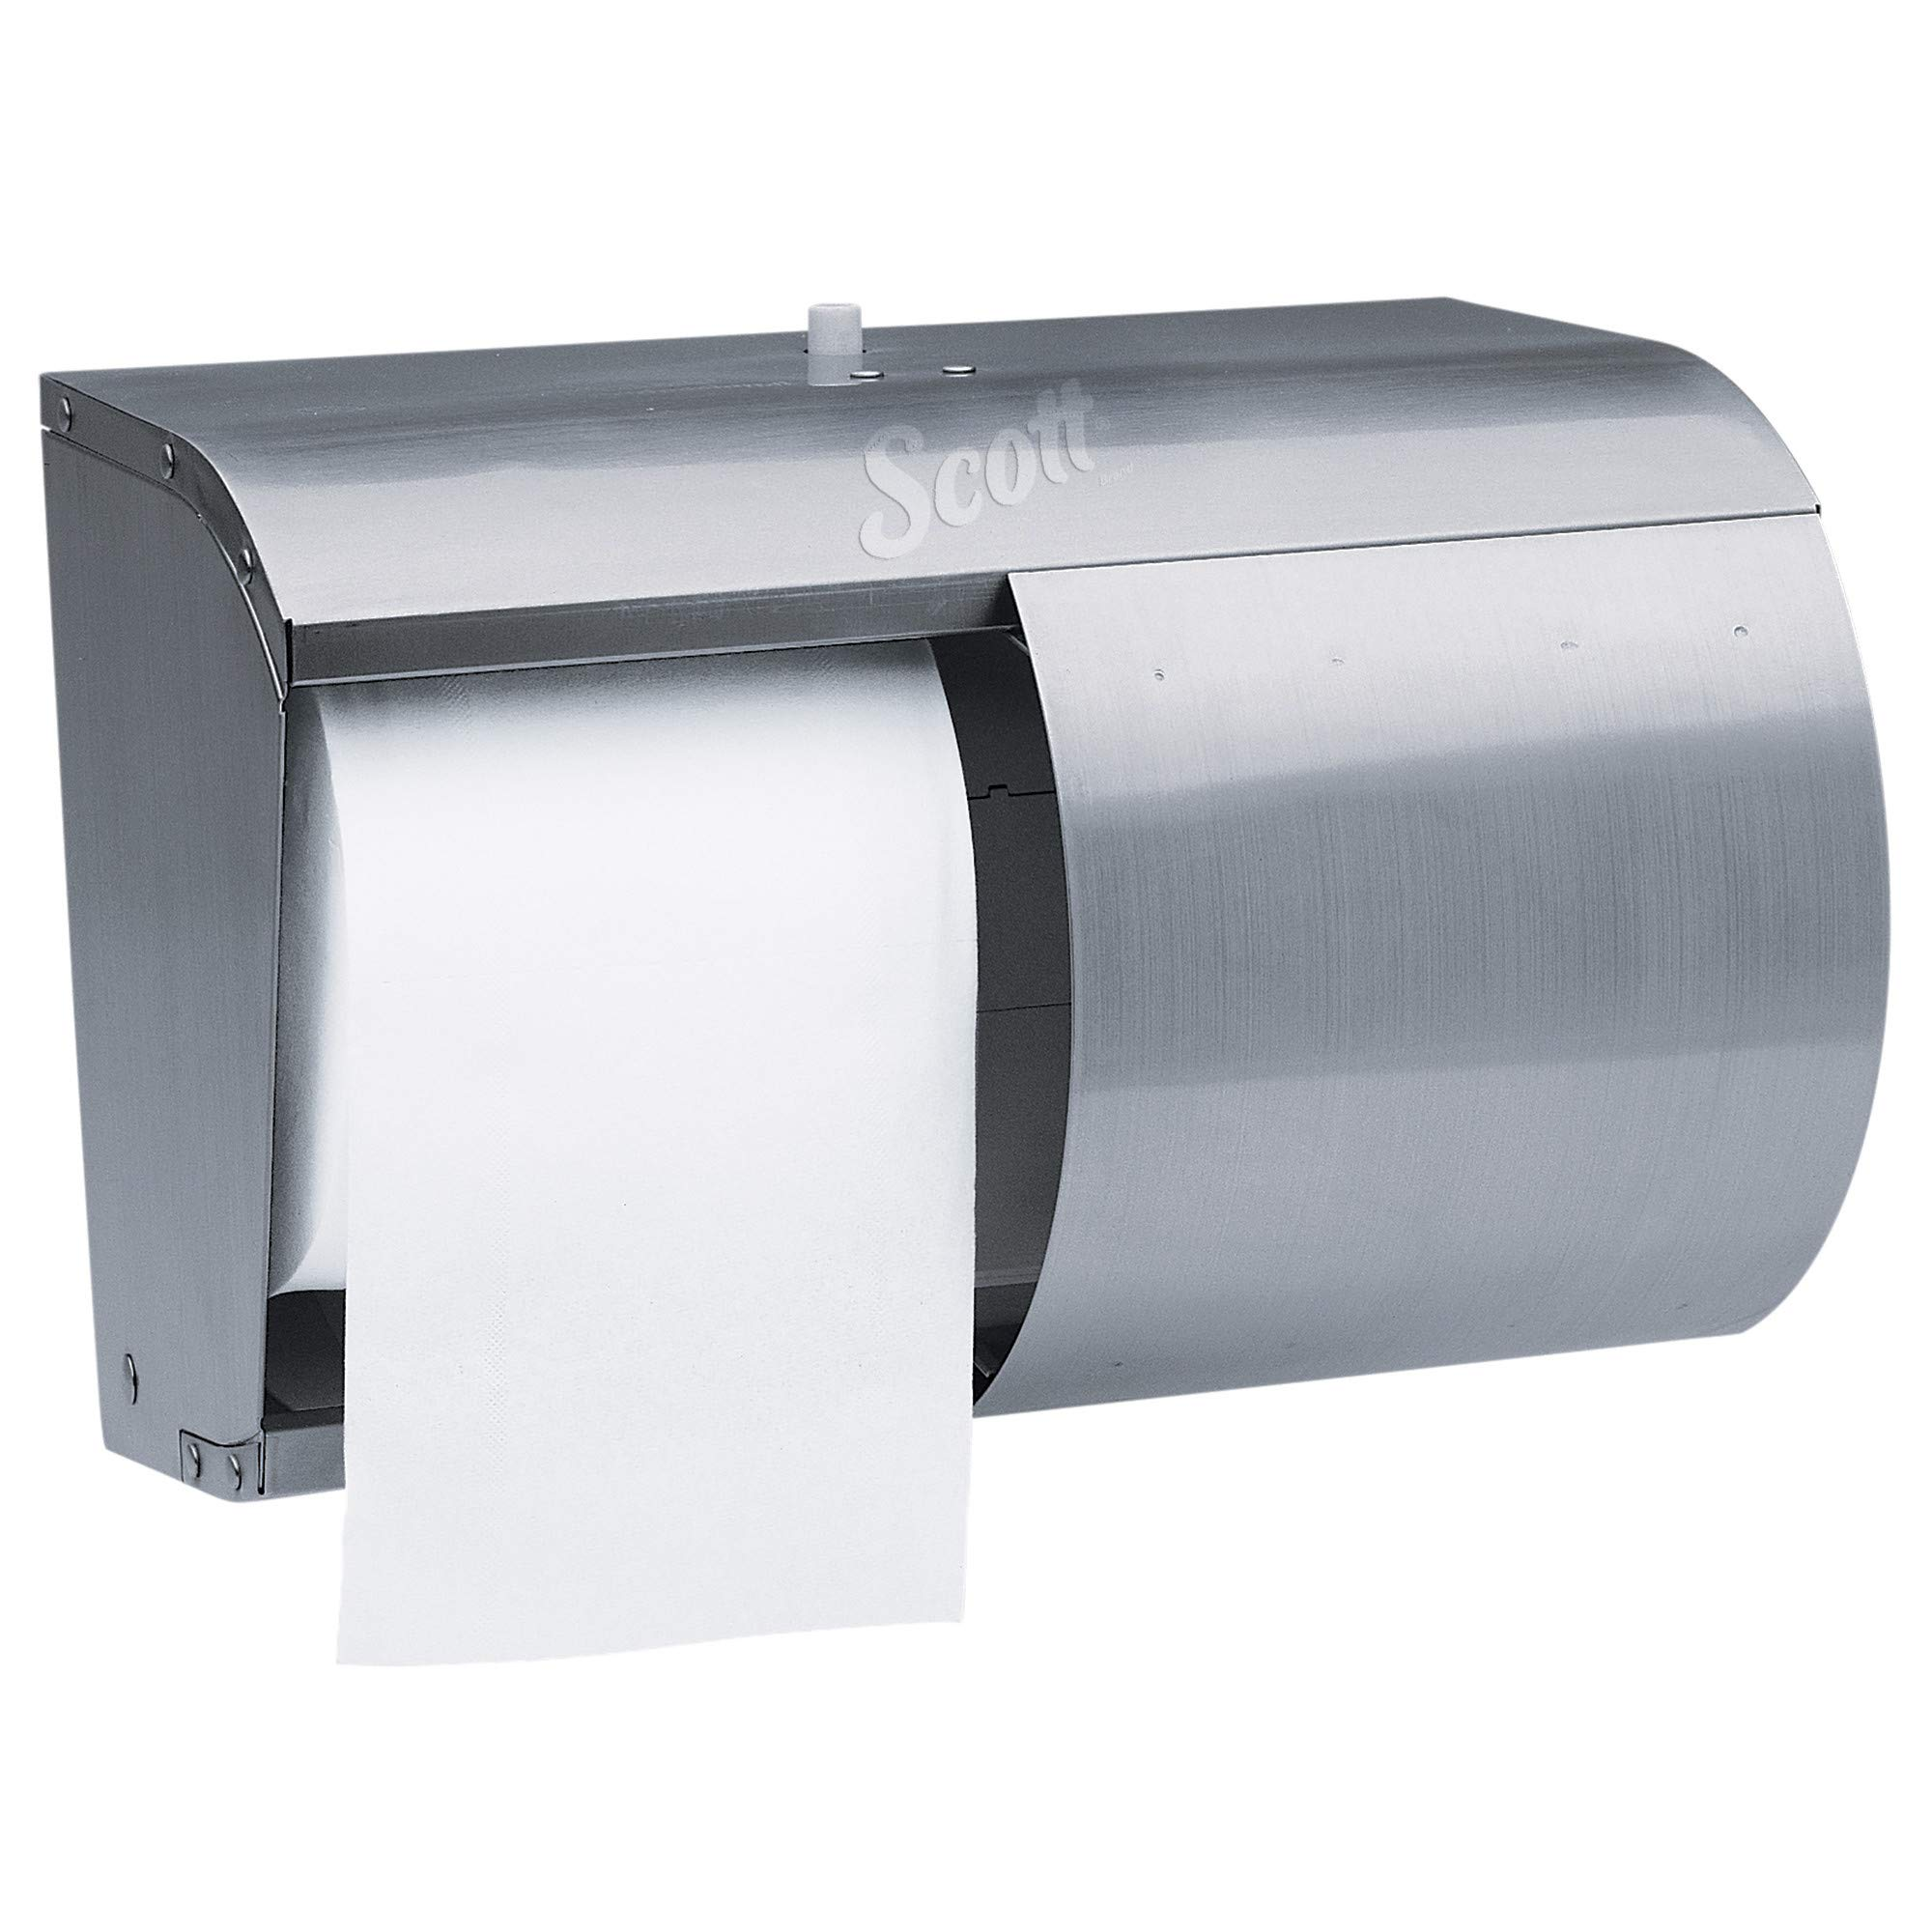 Scott 09606 Pro Coreless SRB Tissue Dispenser, 7 1/10 x 10 1/10 x 6 2/5, Stainless Steel by Scott